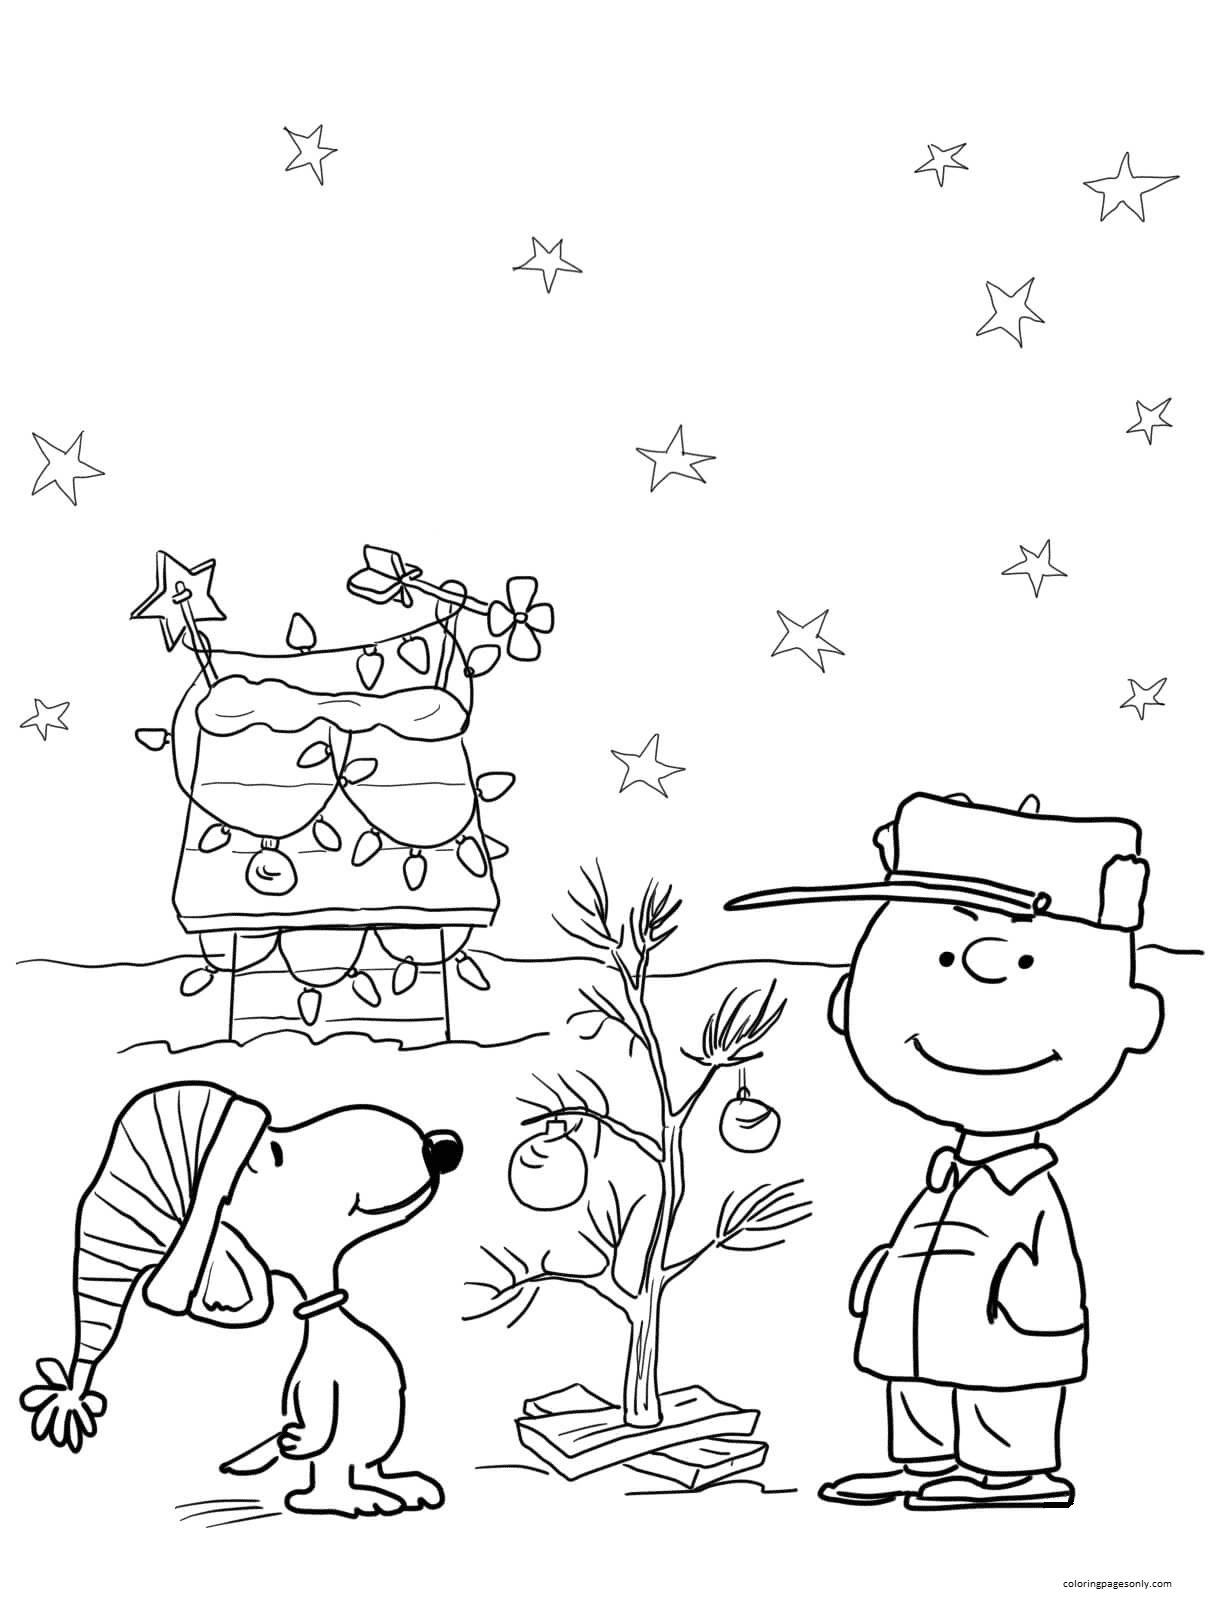 Snoopy Charlie Brown Christmas Coloring Page